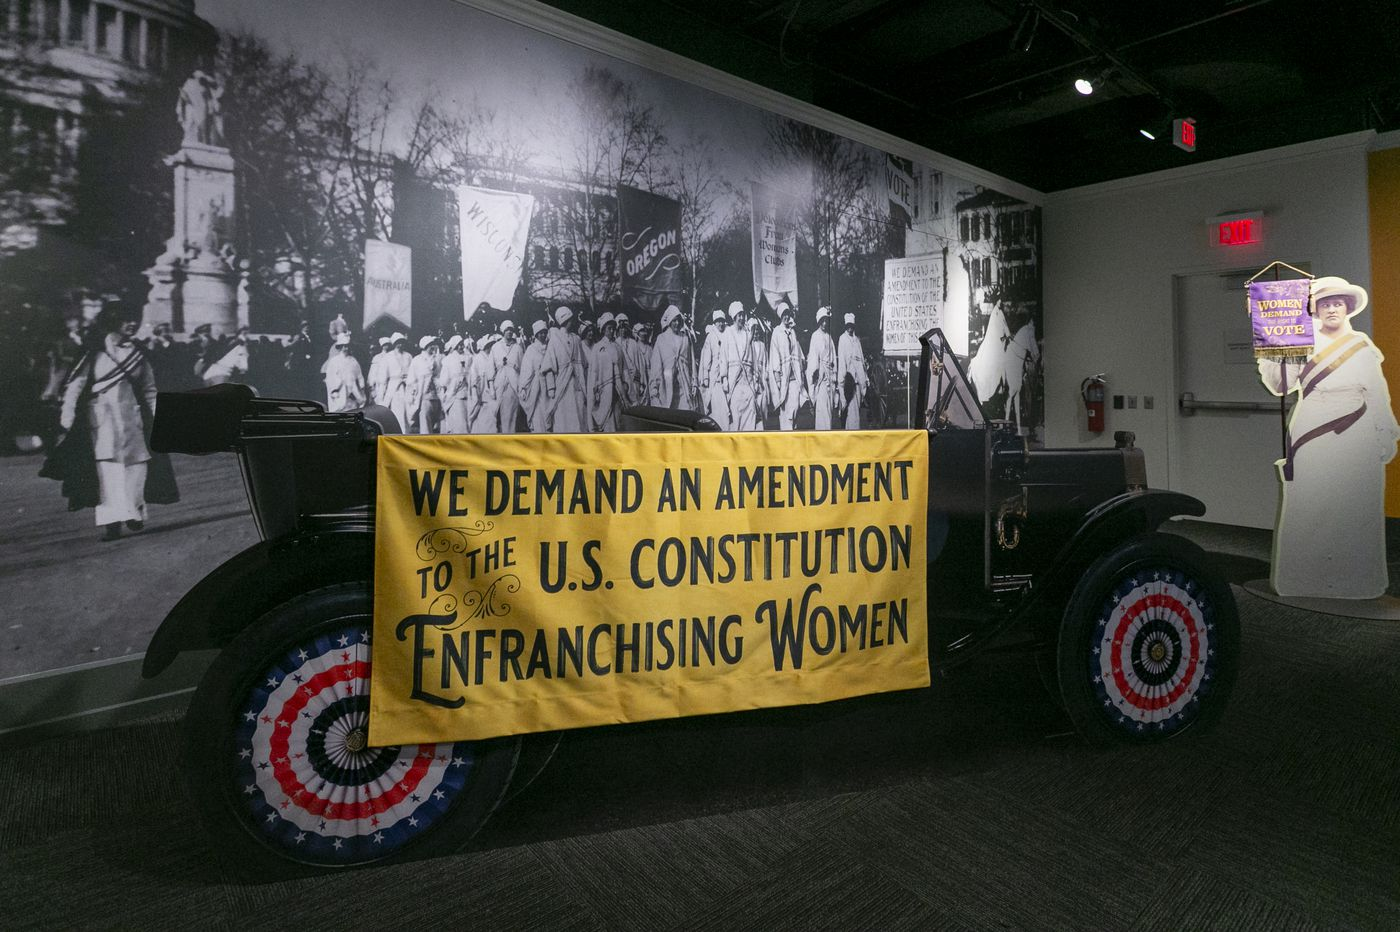 'You can't help but feel empowered': Philly exhibit shows the epic struggle for women's right to vote